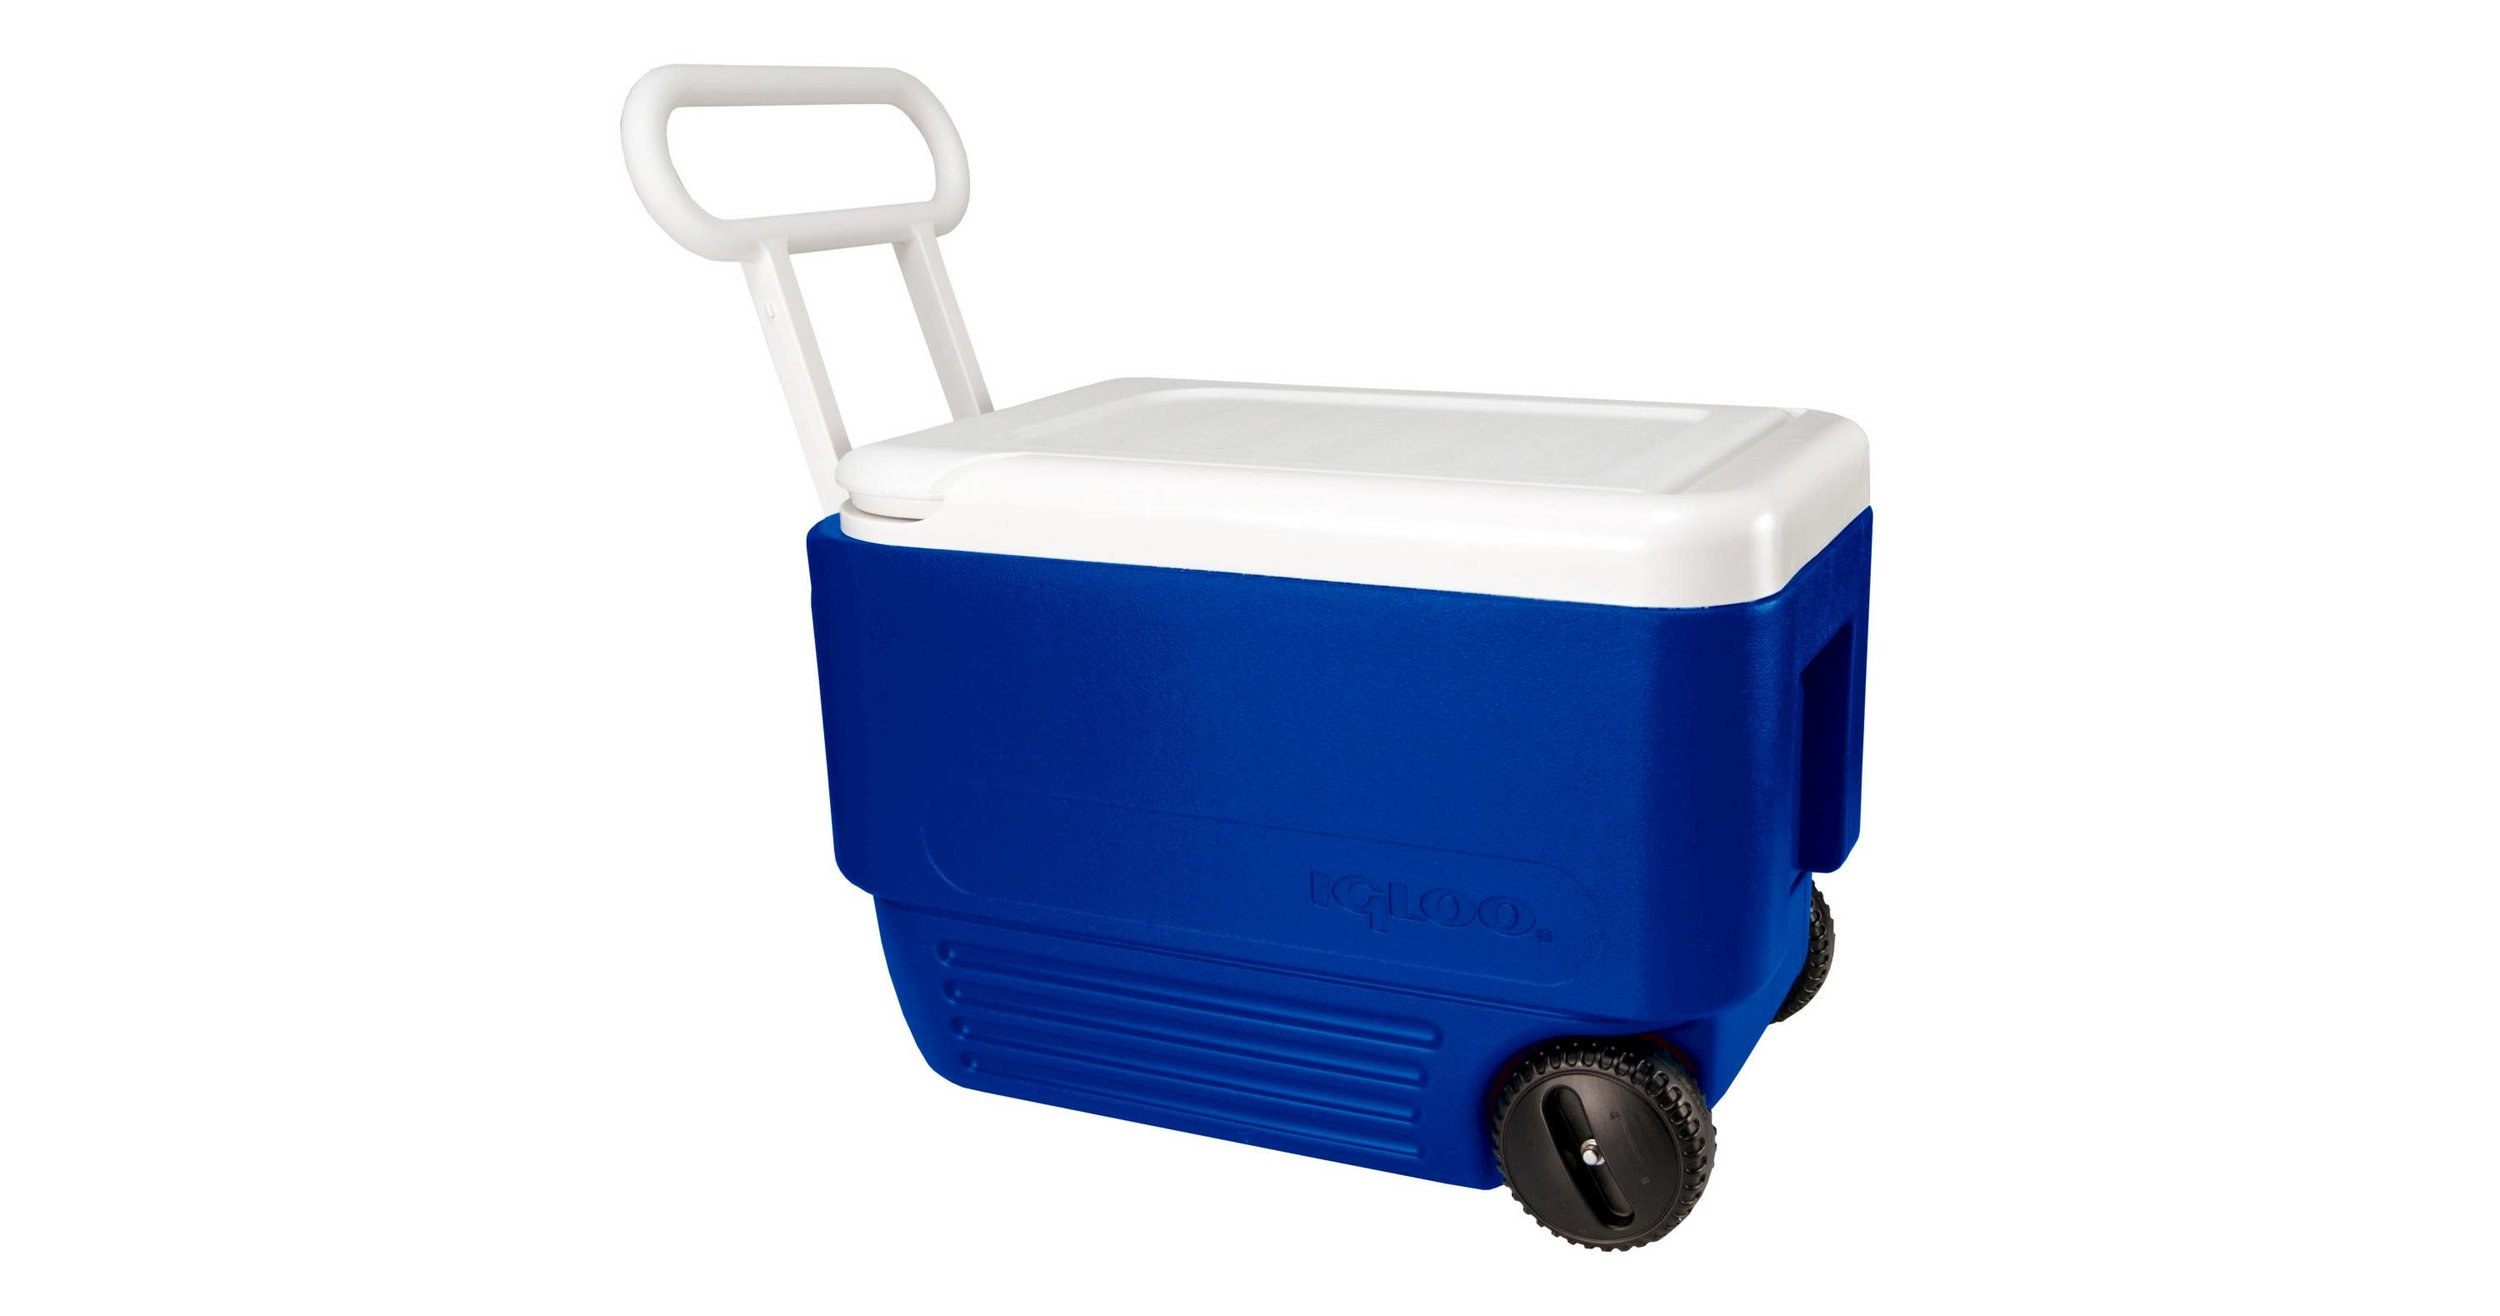 Cooler - Add a cooler $10 a day